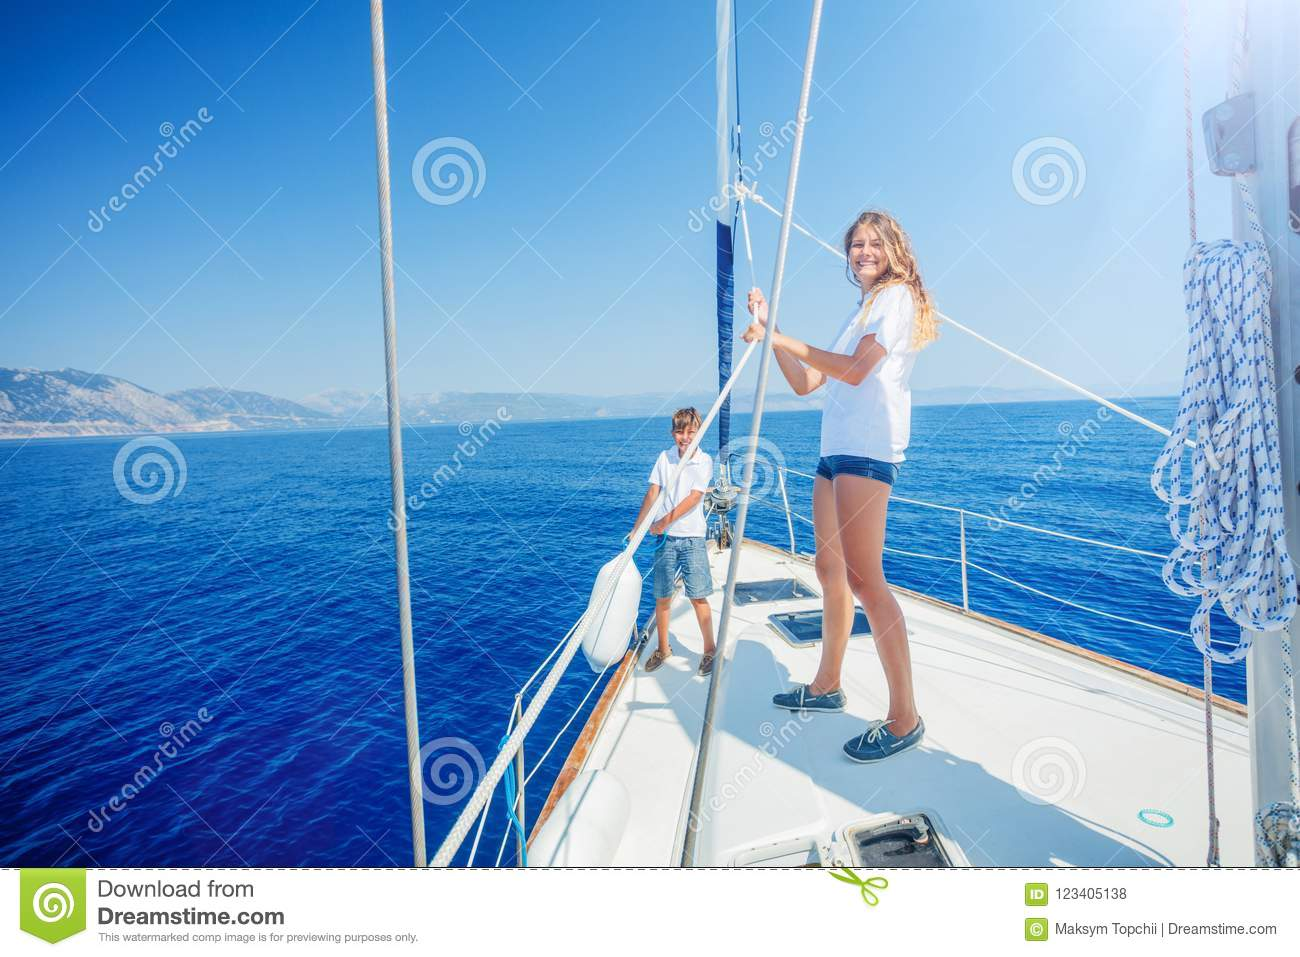 Girl with brother on board of sailing yacht on summer cruise.